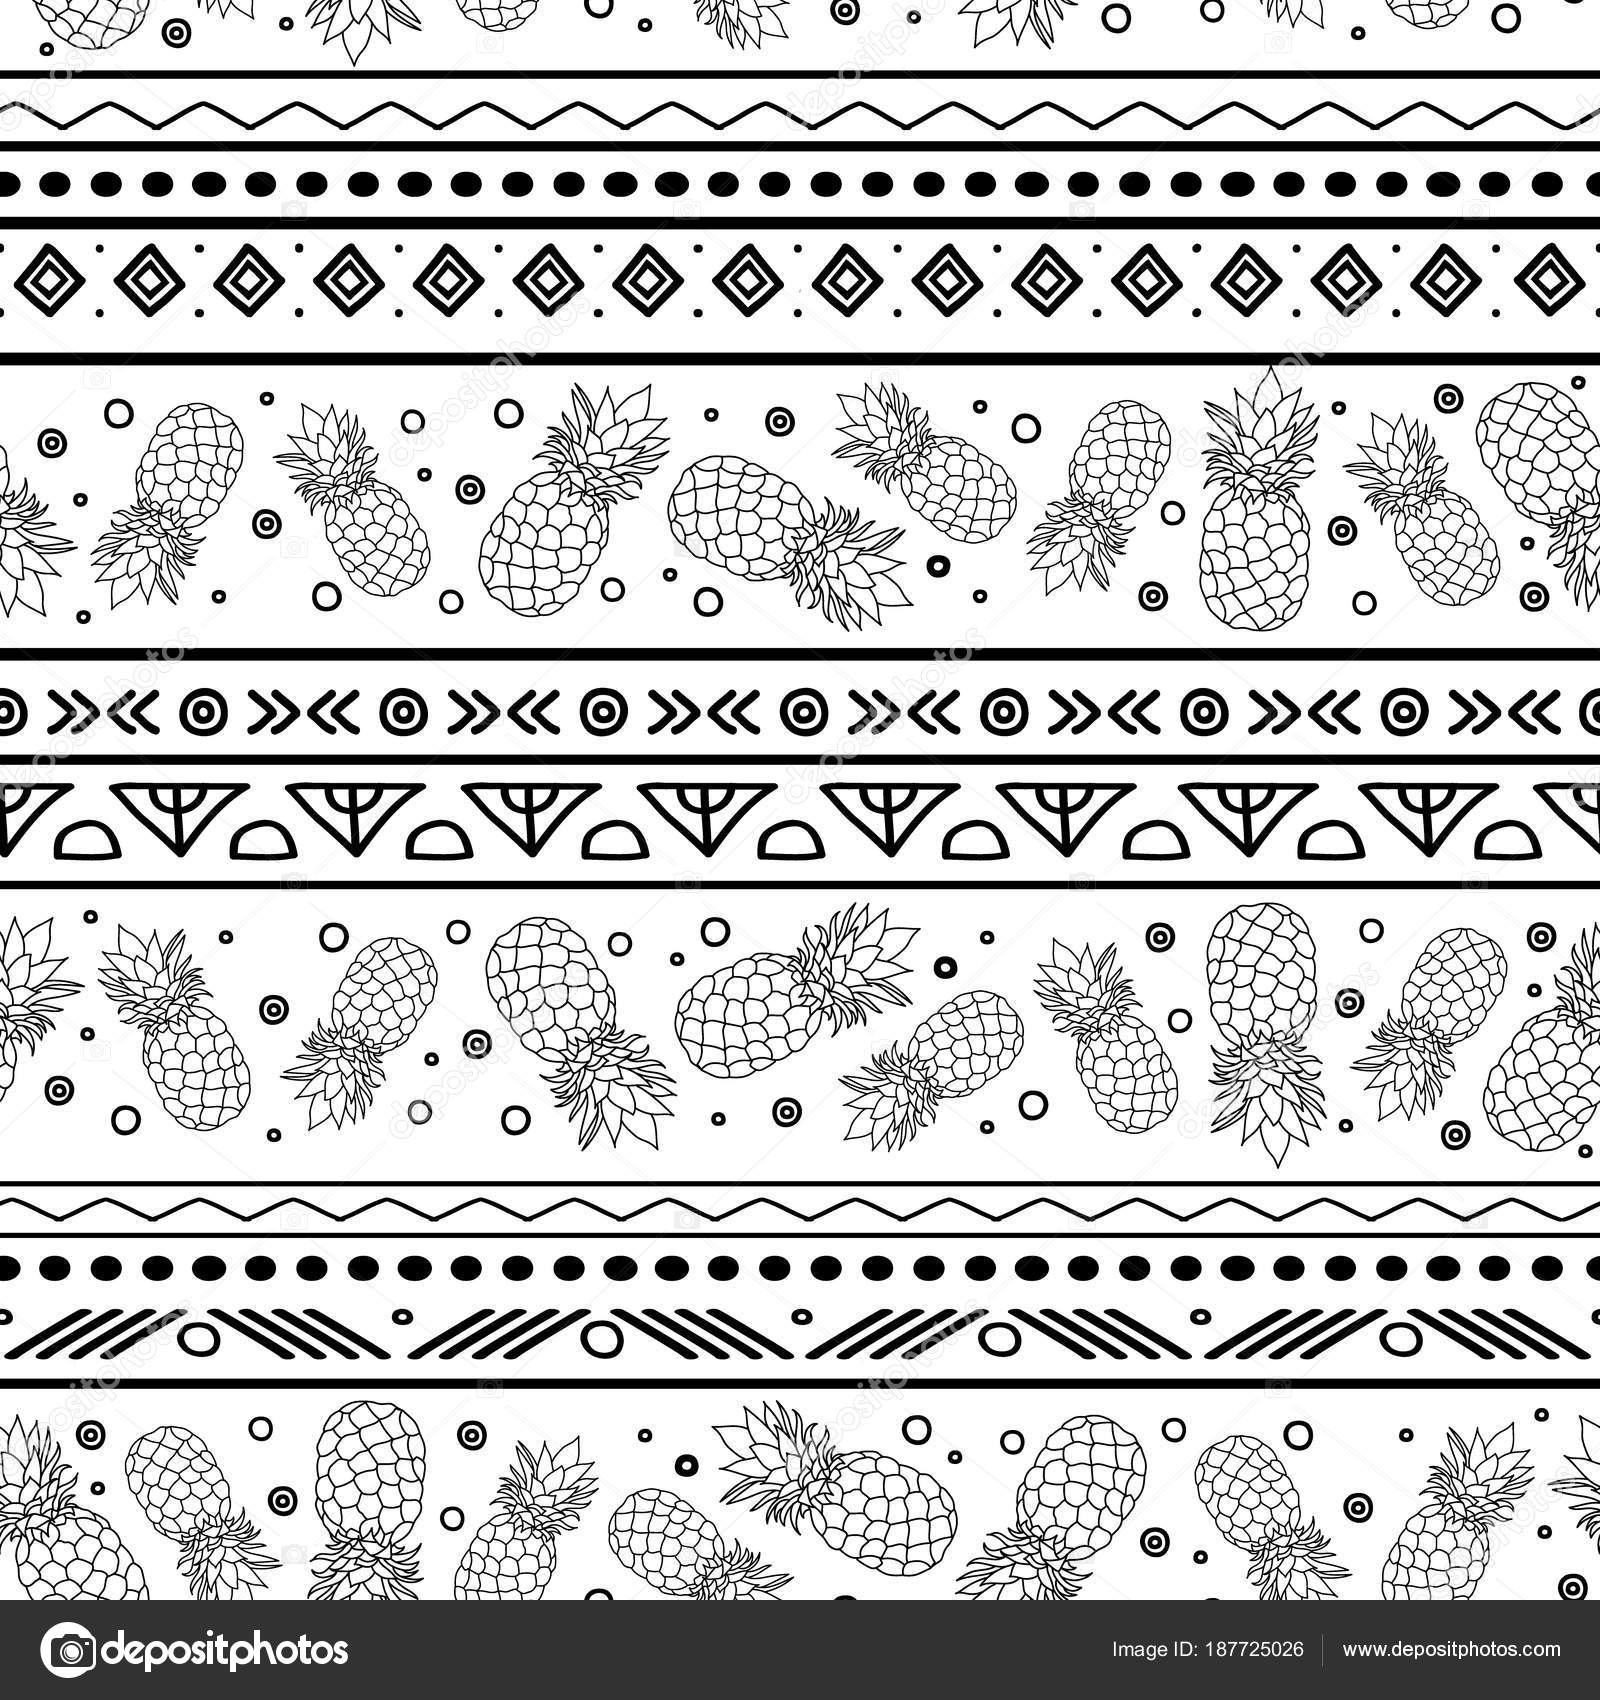 Black And White Tribal Wallpaper Vectorblue Black And